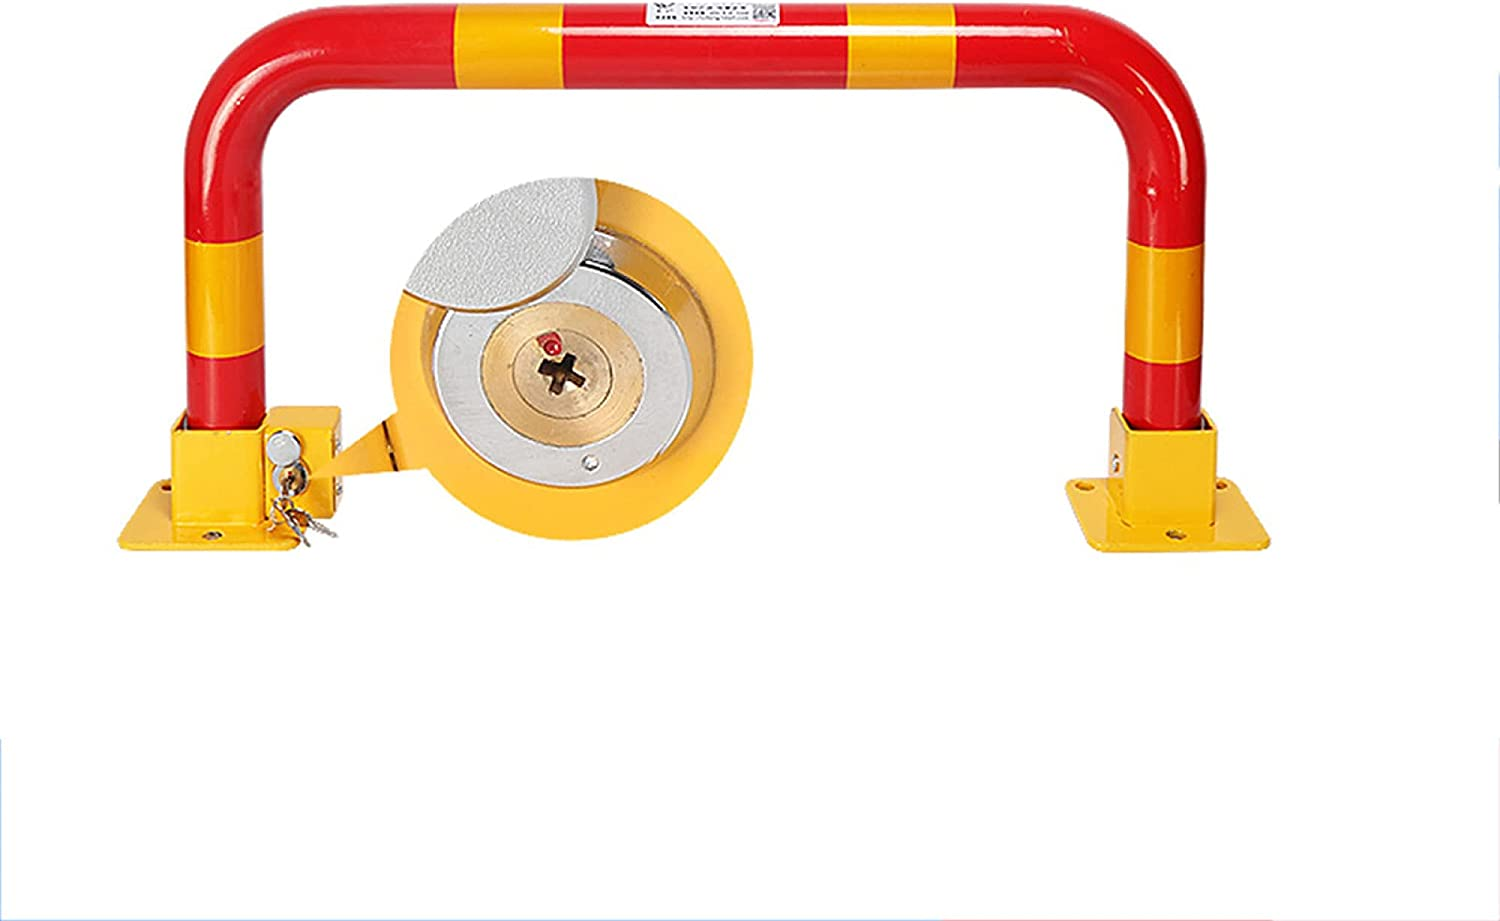 Parking barriers Thickened Anti-Collision Max 68% OFF Locks Max 55% OFF Fixed